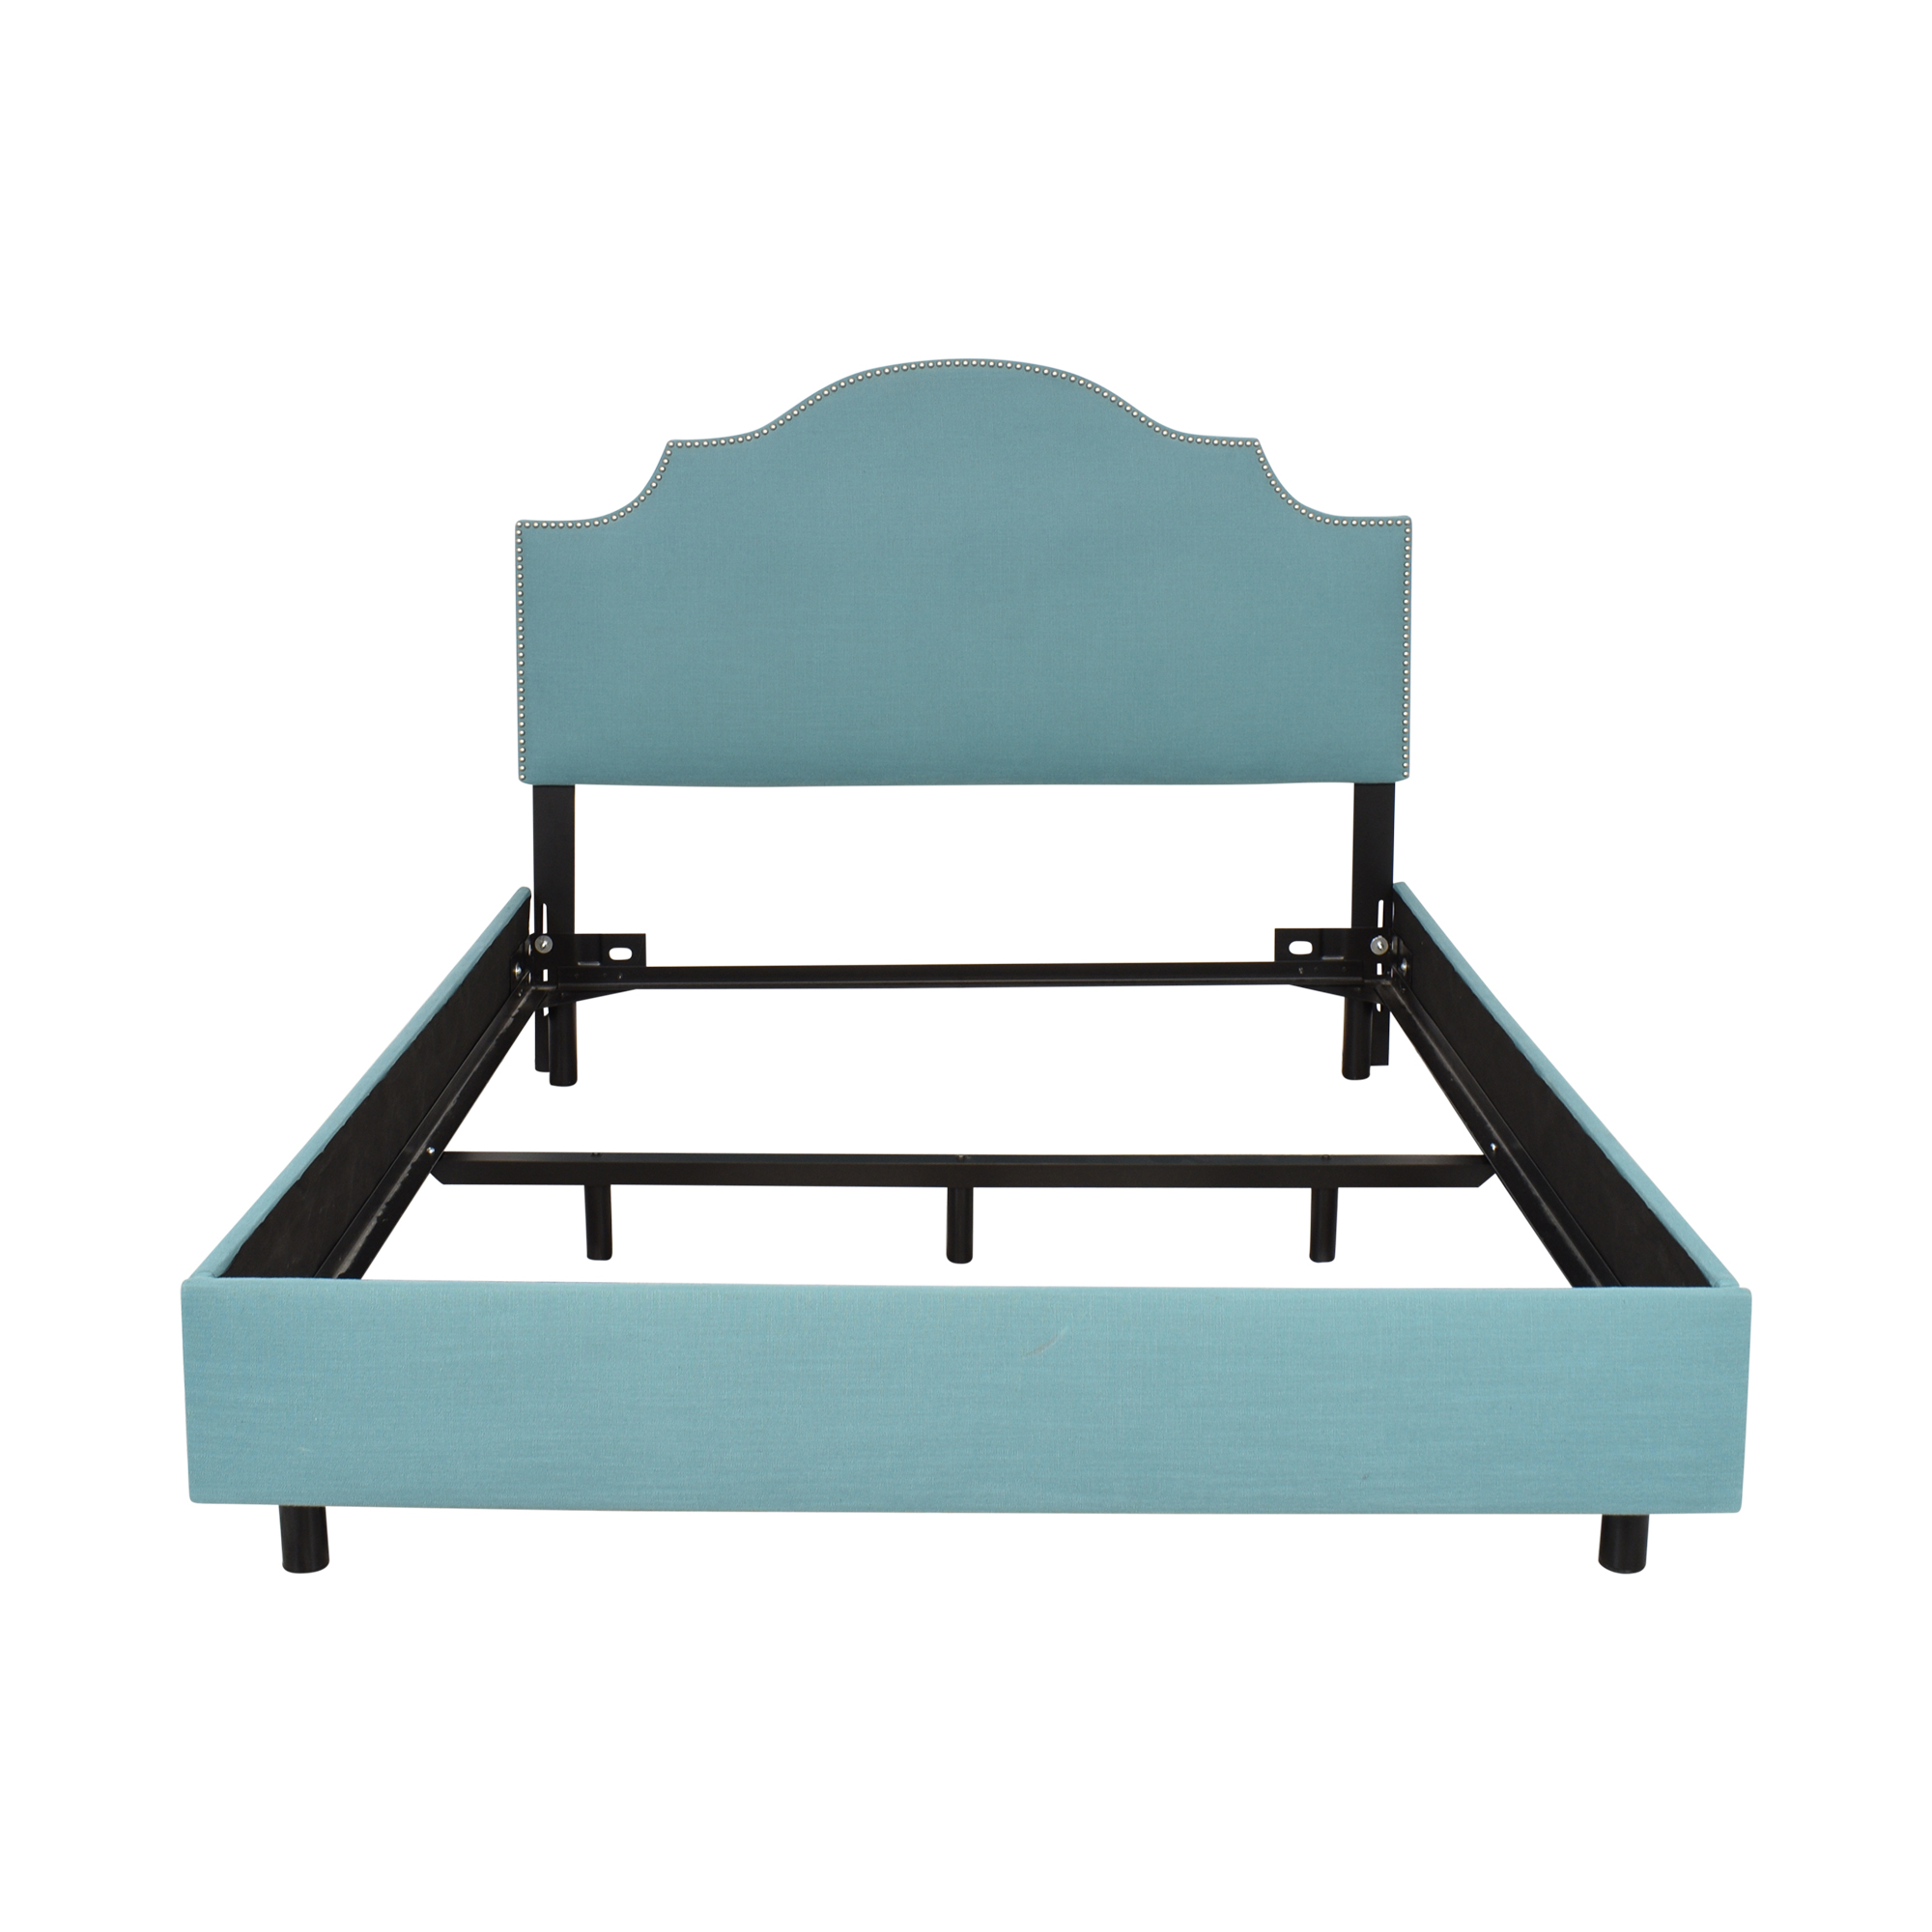 House of Hampton House of Hampton Amesbury Queen Upholstered Panel Bed pa